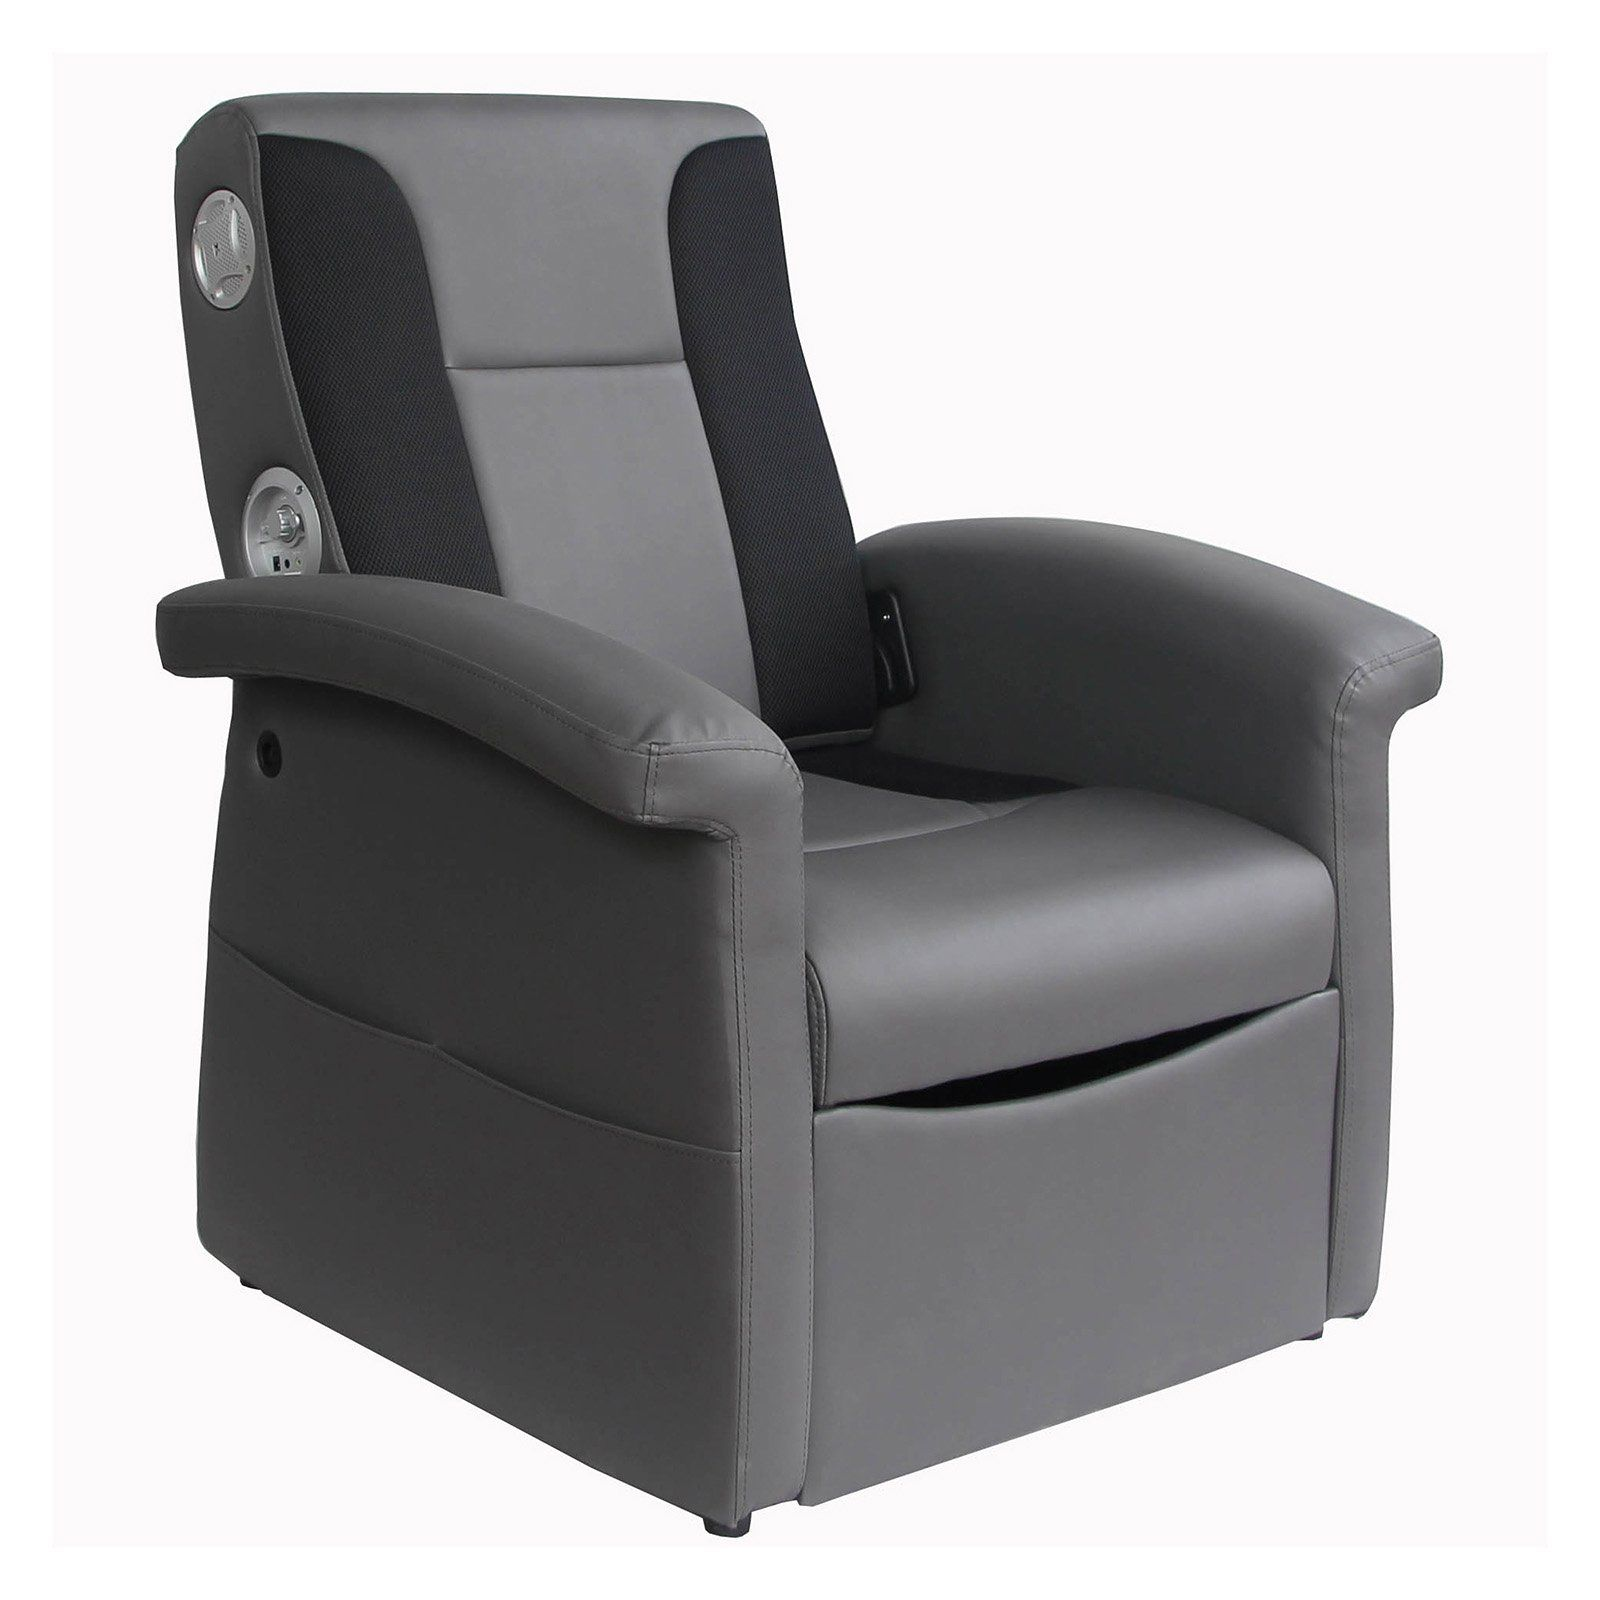 Gaming chair (With images) Gaming chair, Rocker chairs